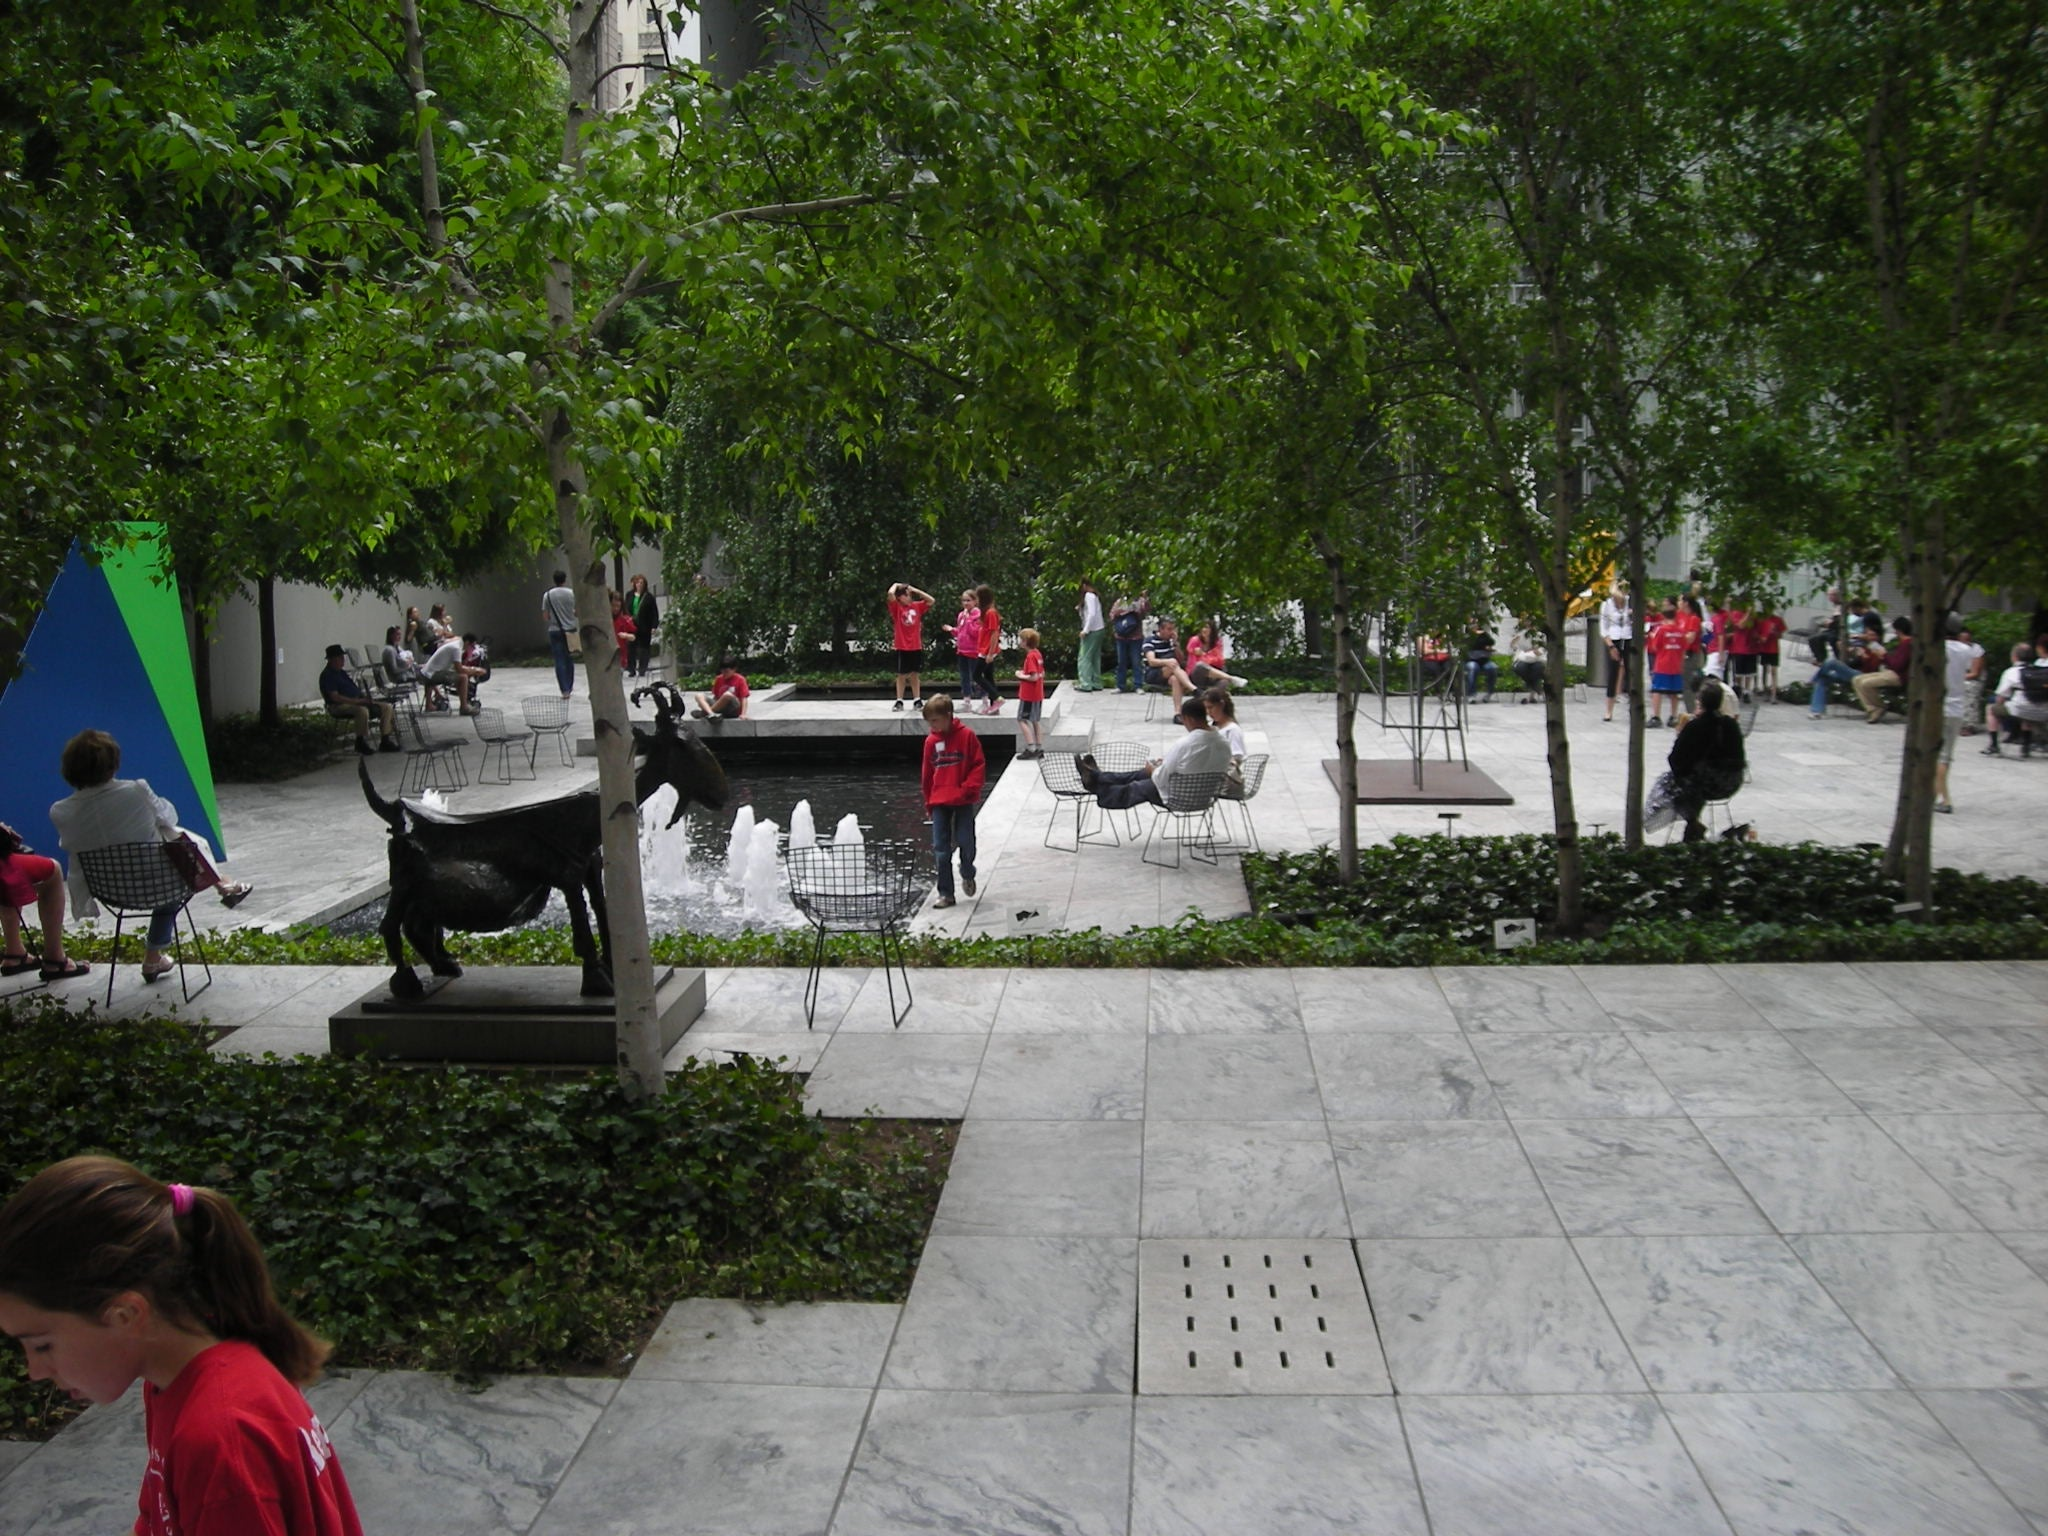 The Abby Aldrich Rockefeller Sculpture Garden